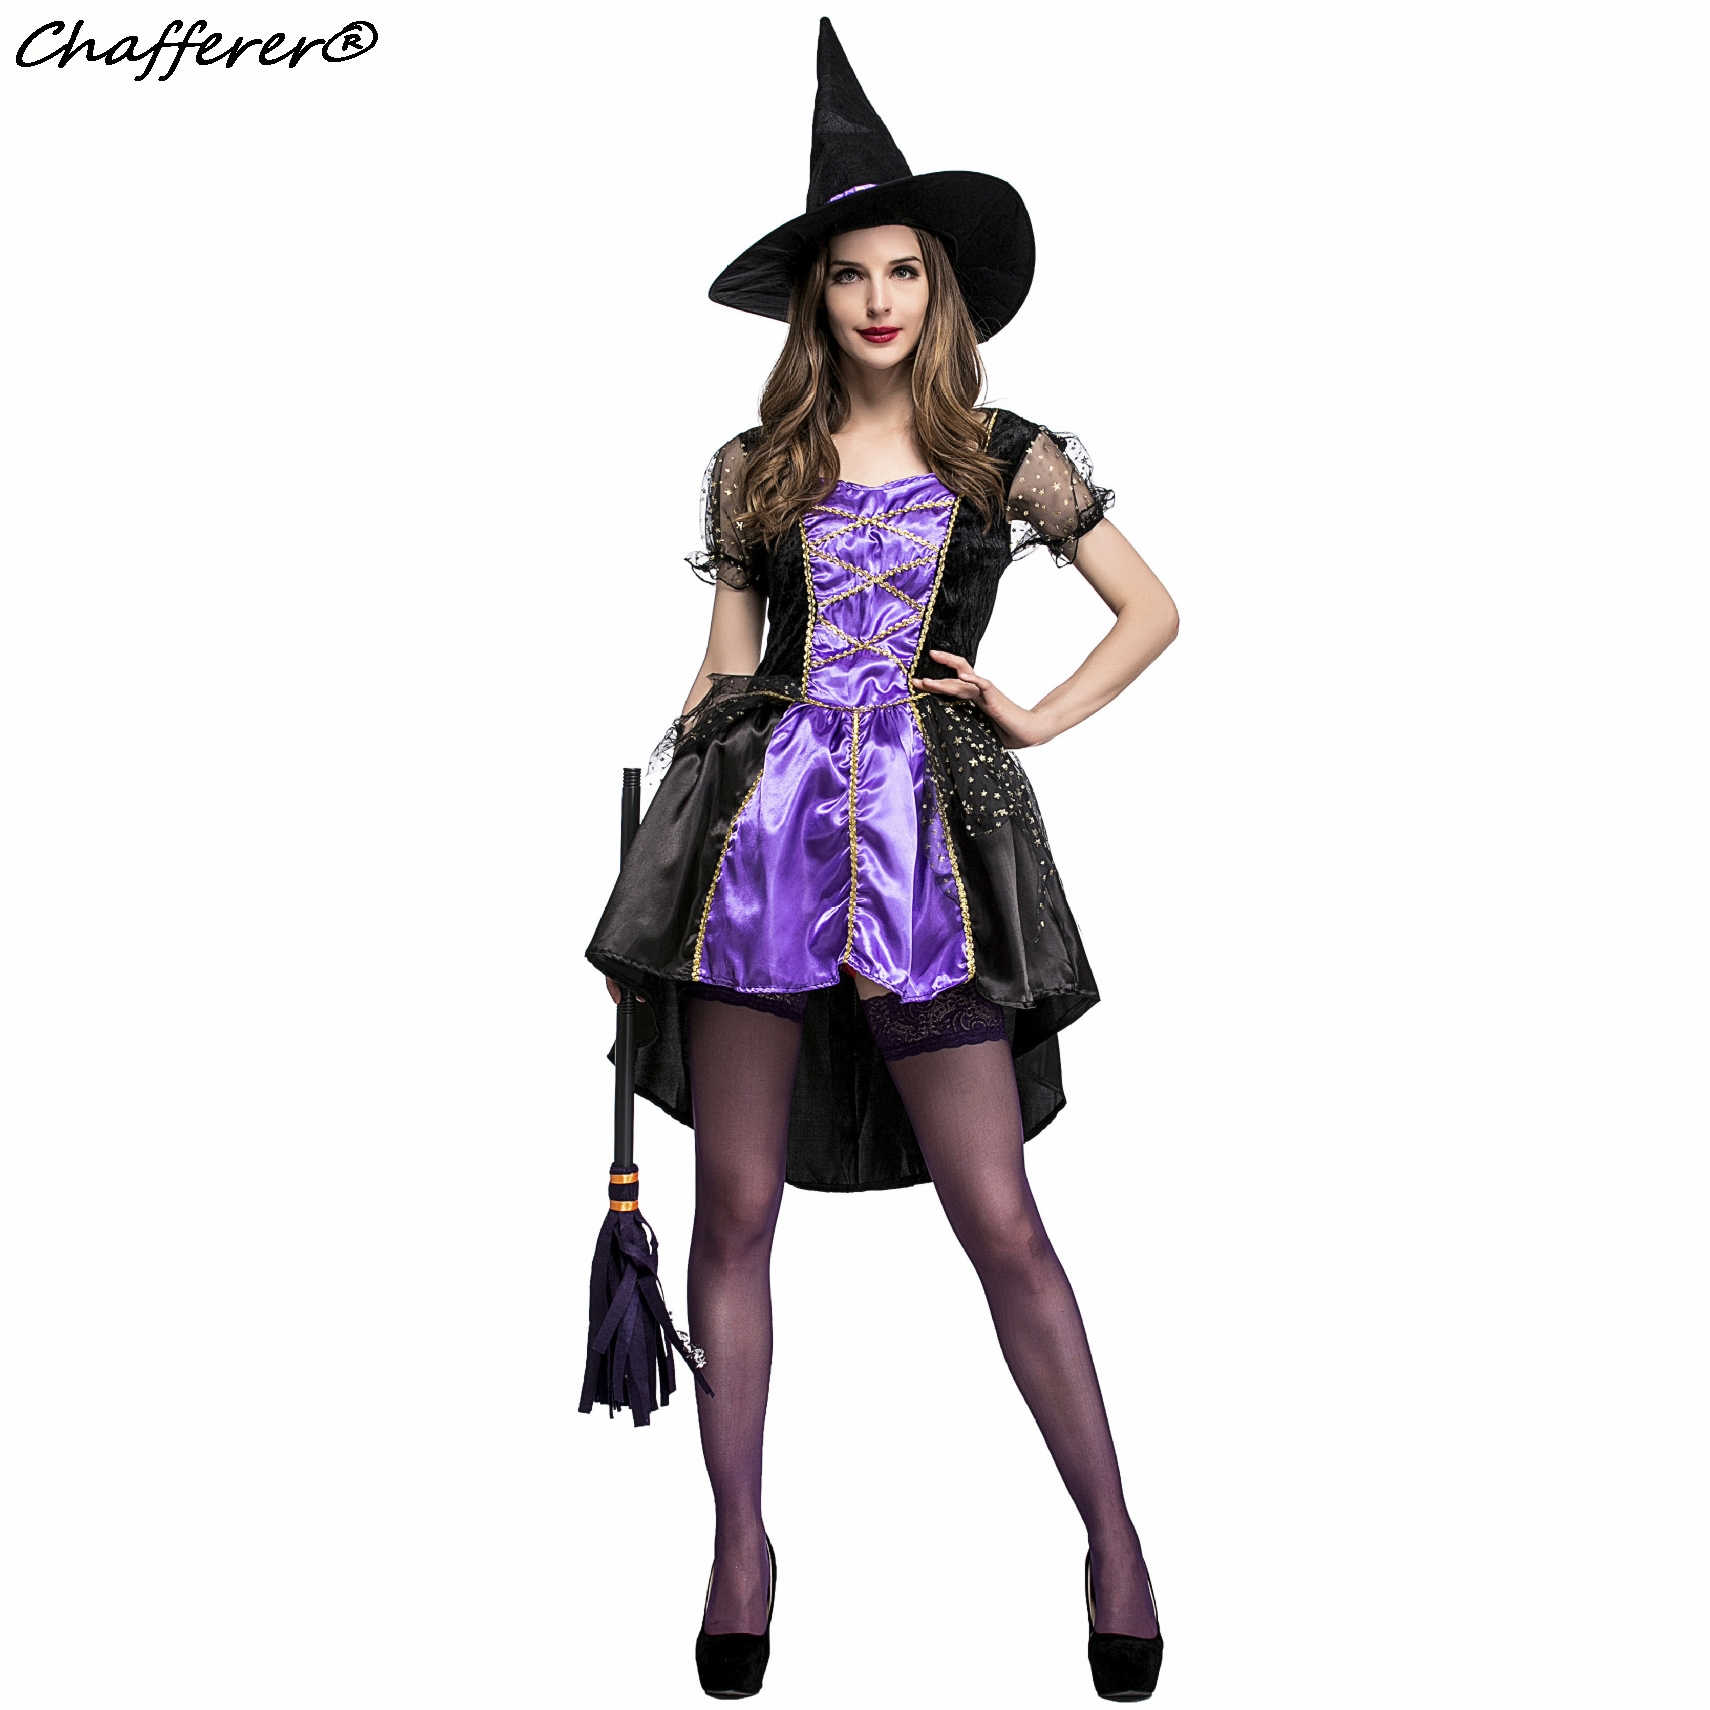 chafferer 2017 new fashion women halloween costumes purple swallowtail witch dresses cosplay game suit sexy womens - Halloween Fashion Games